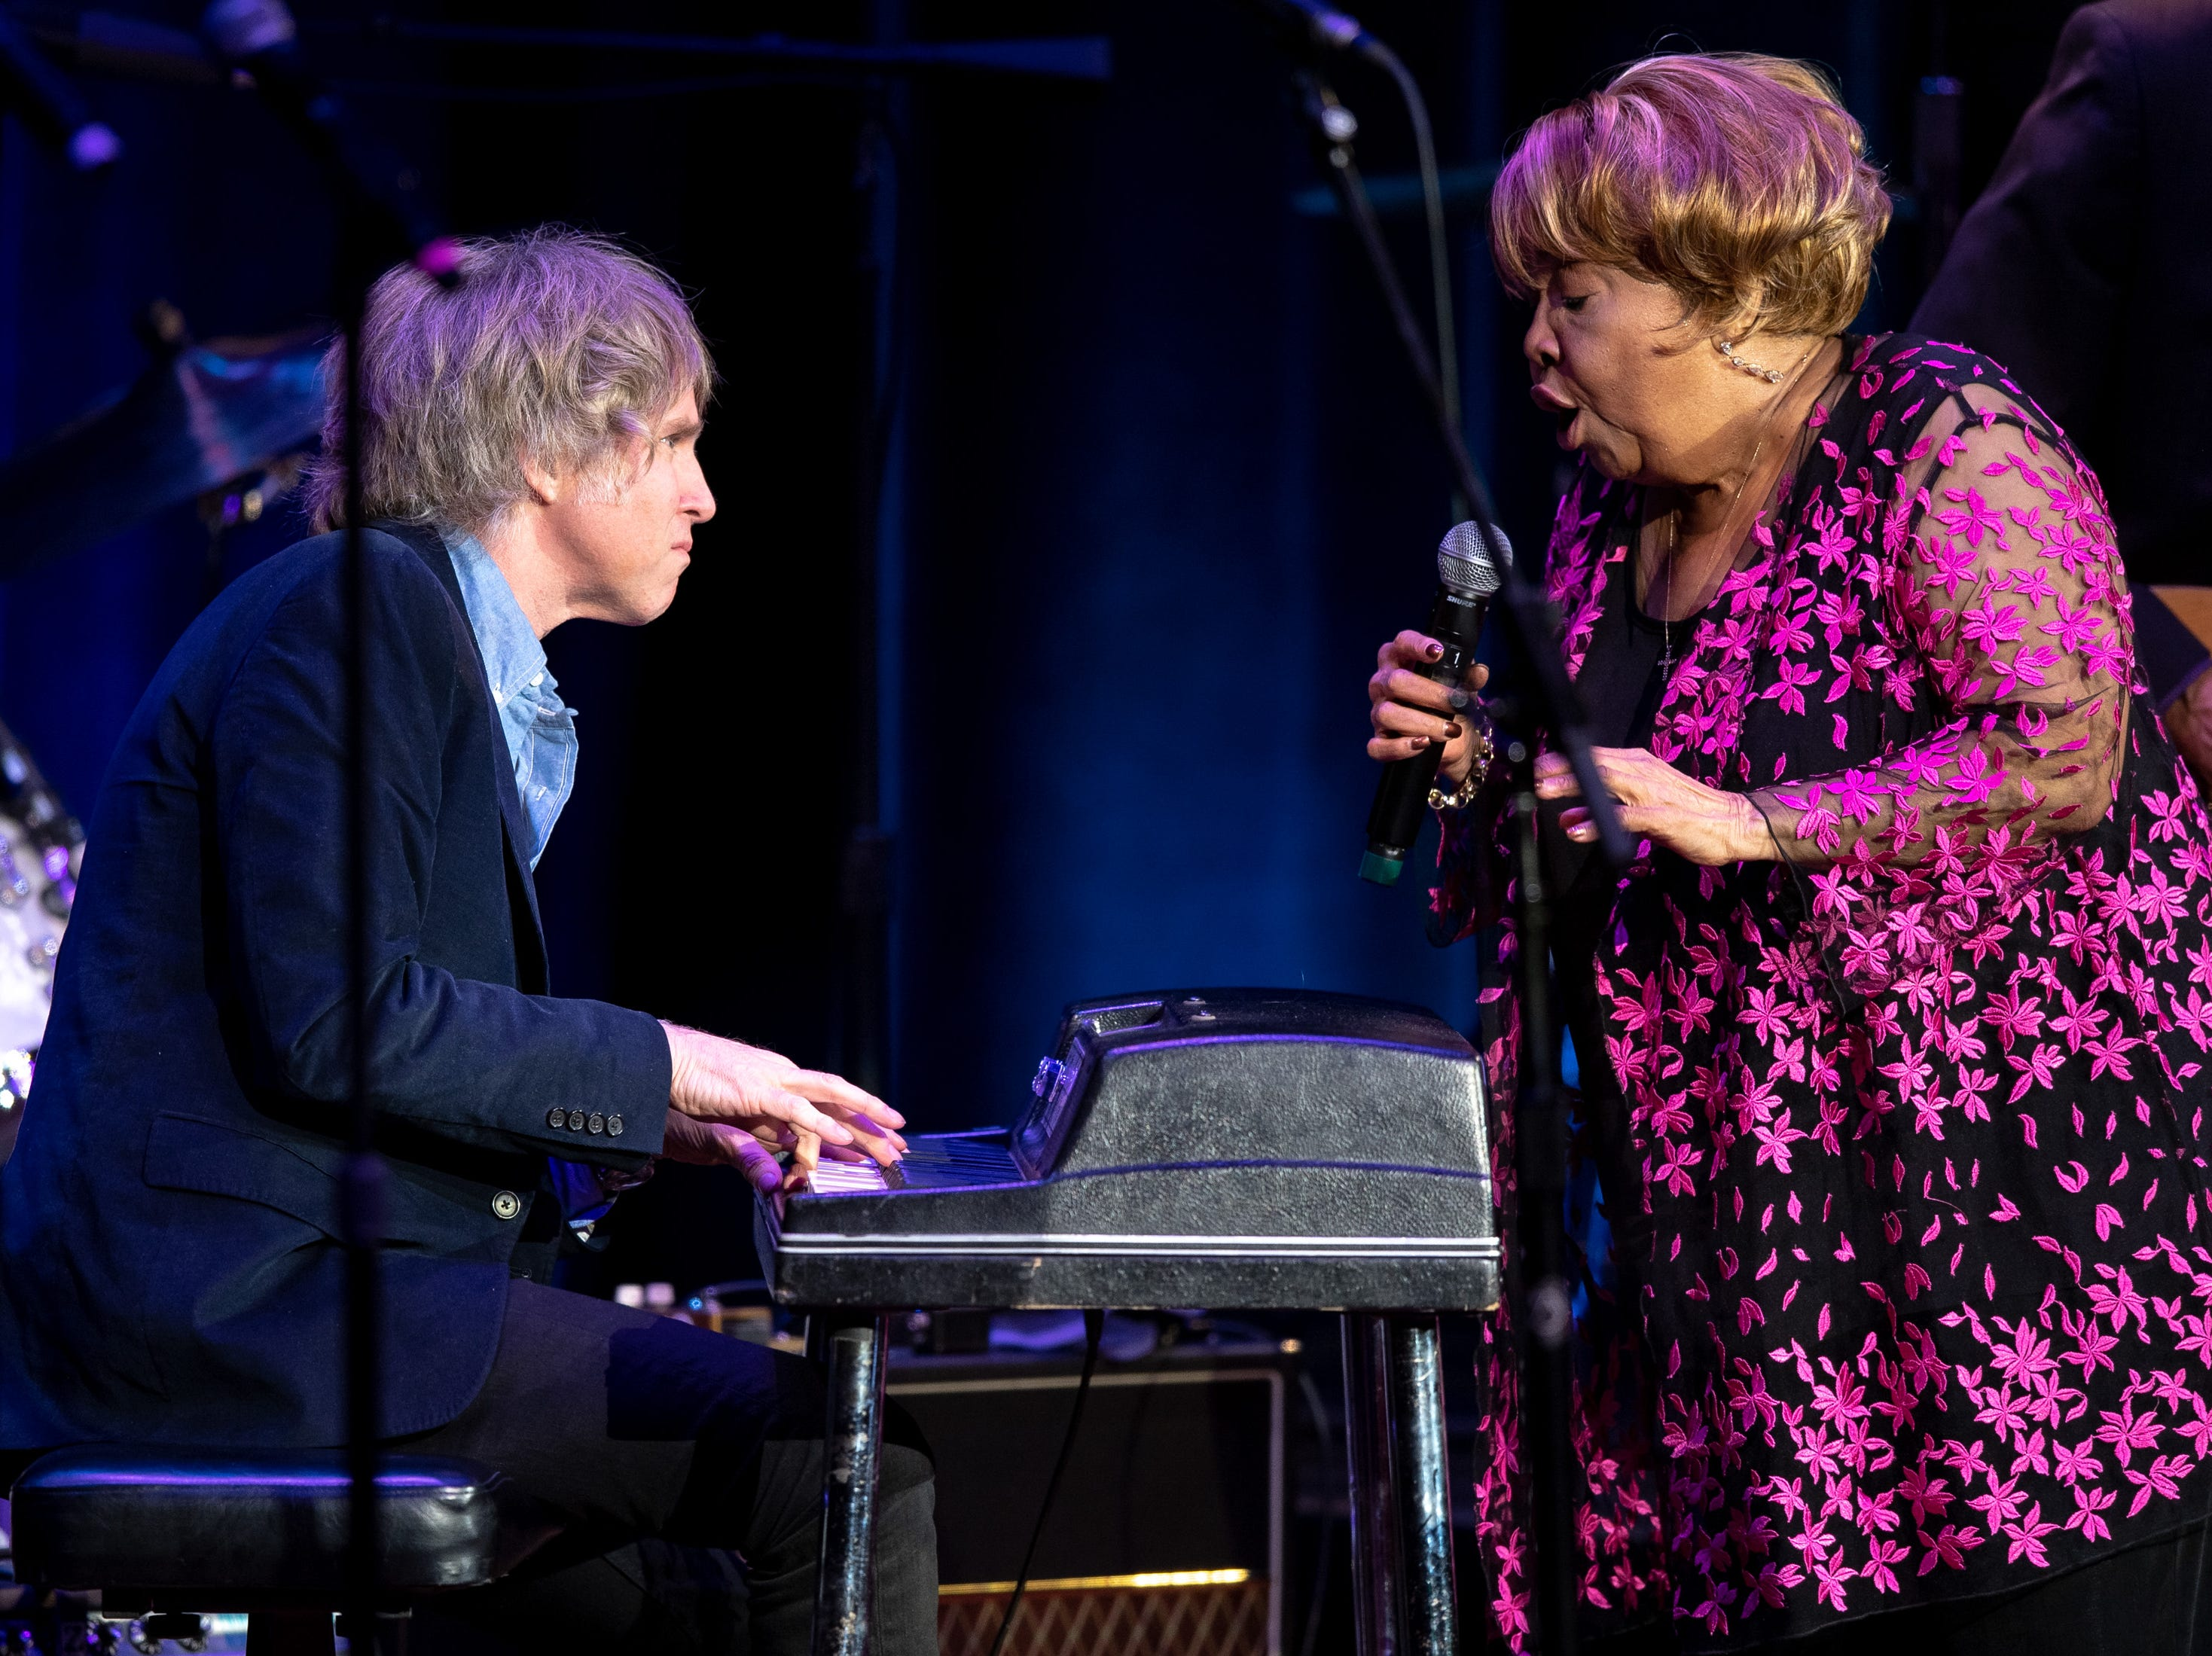 Mavis Staples performs with Pat Sansone during the Mavis and Friends concert at the Ryman Auditorium in Nashville, Tenn., Wednesday, May 15, 2019.